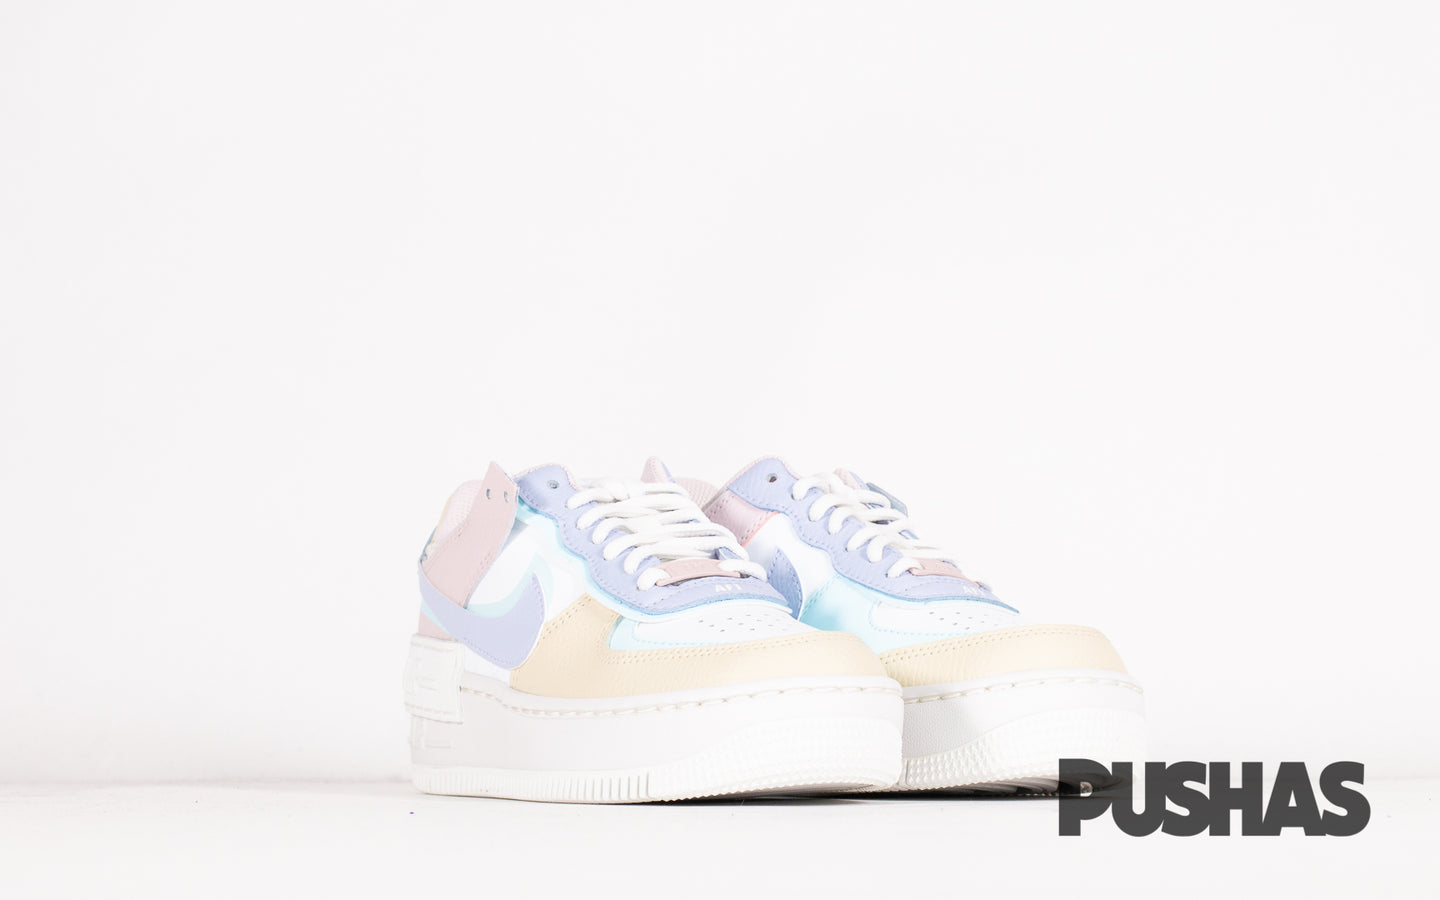 pushas-nike-Air-Force-1-W-Shadow-Pastel